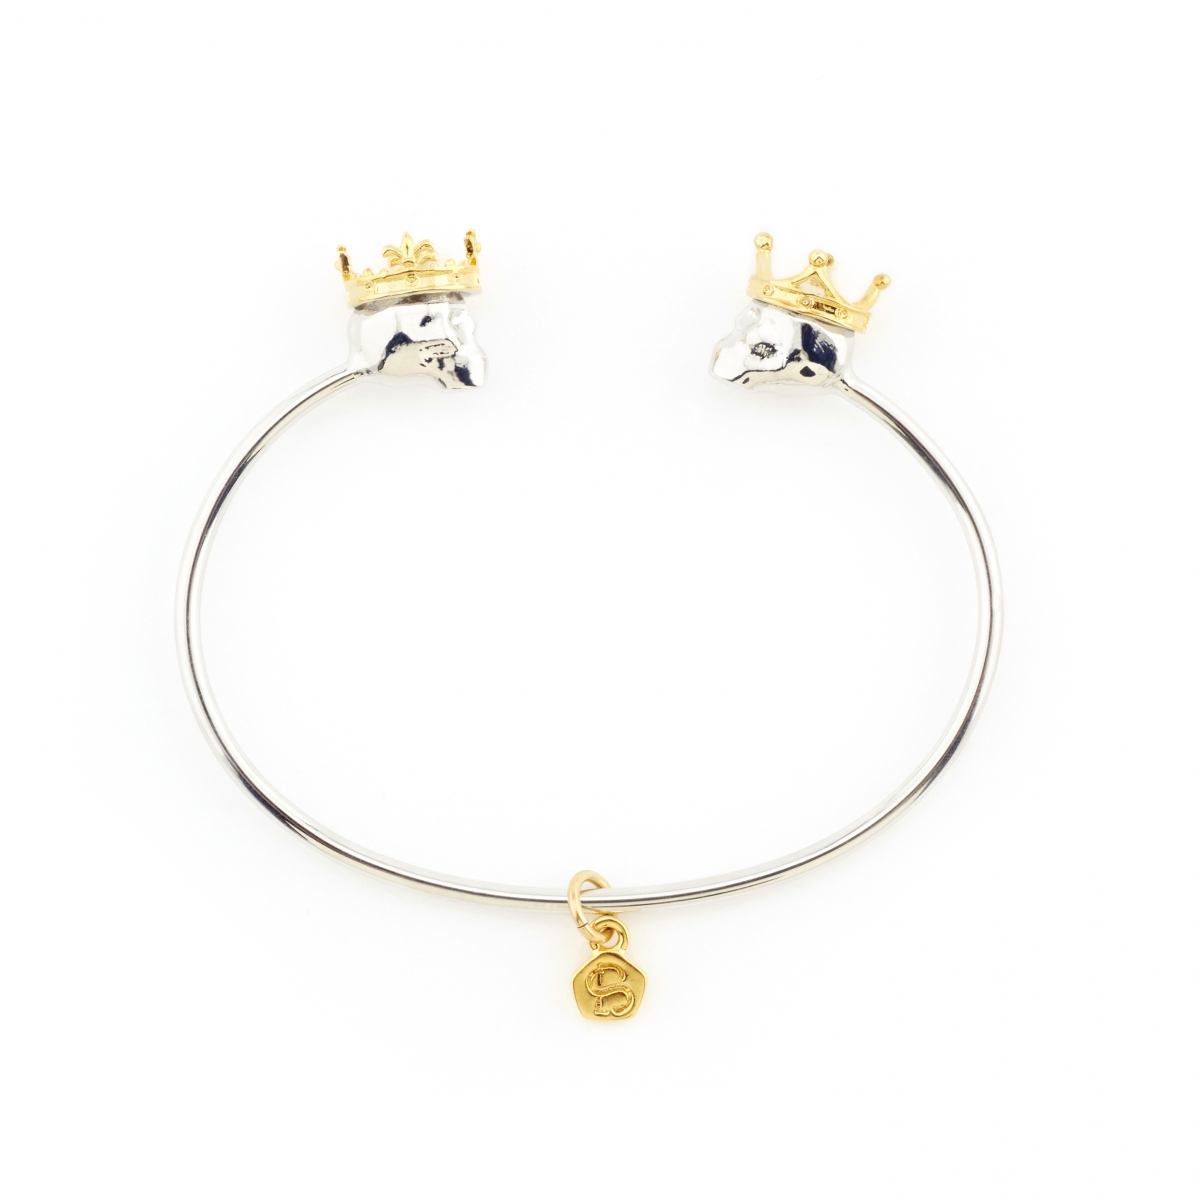 King and Queen Skull Bangle